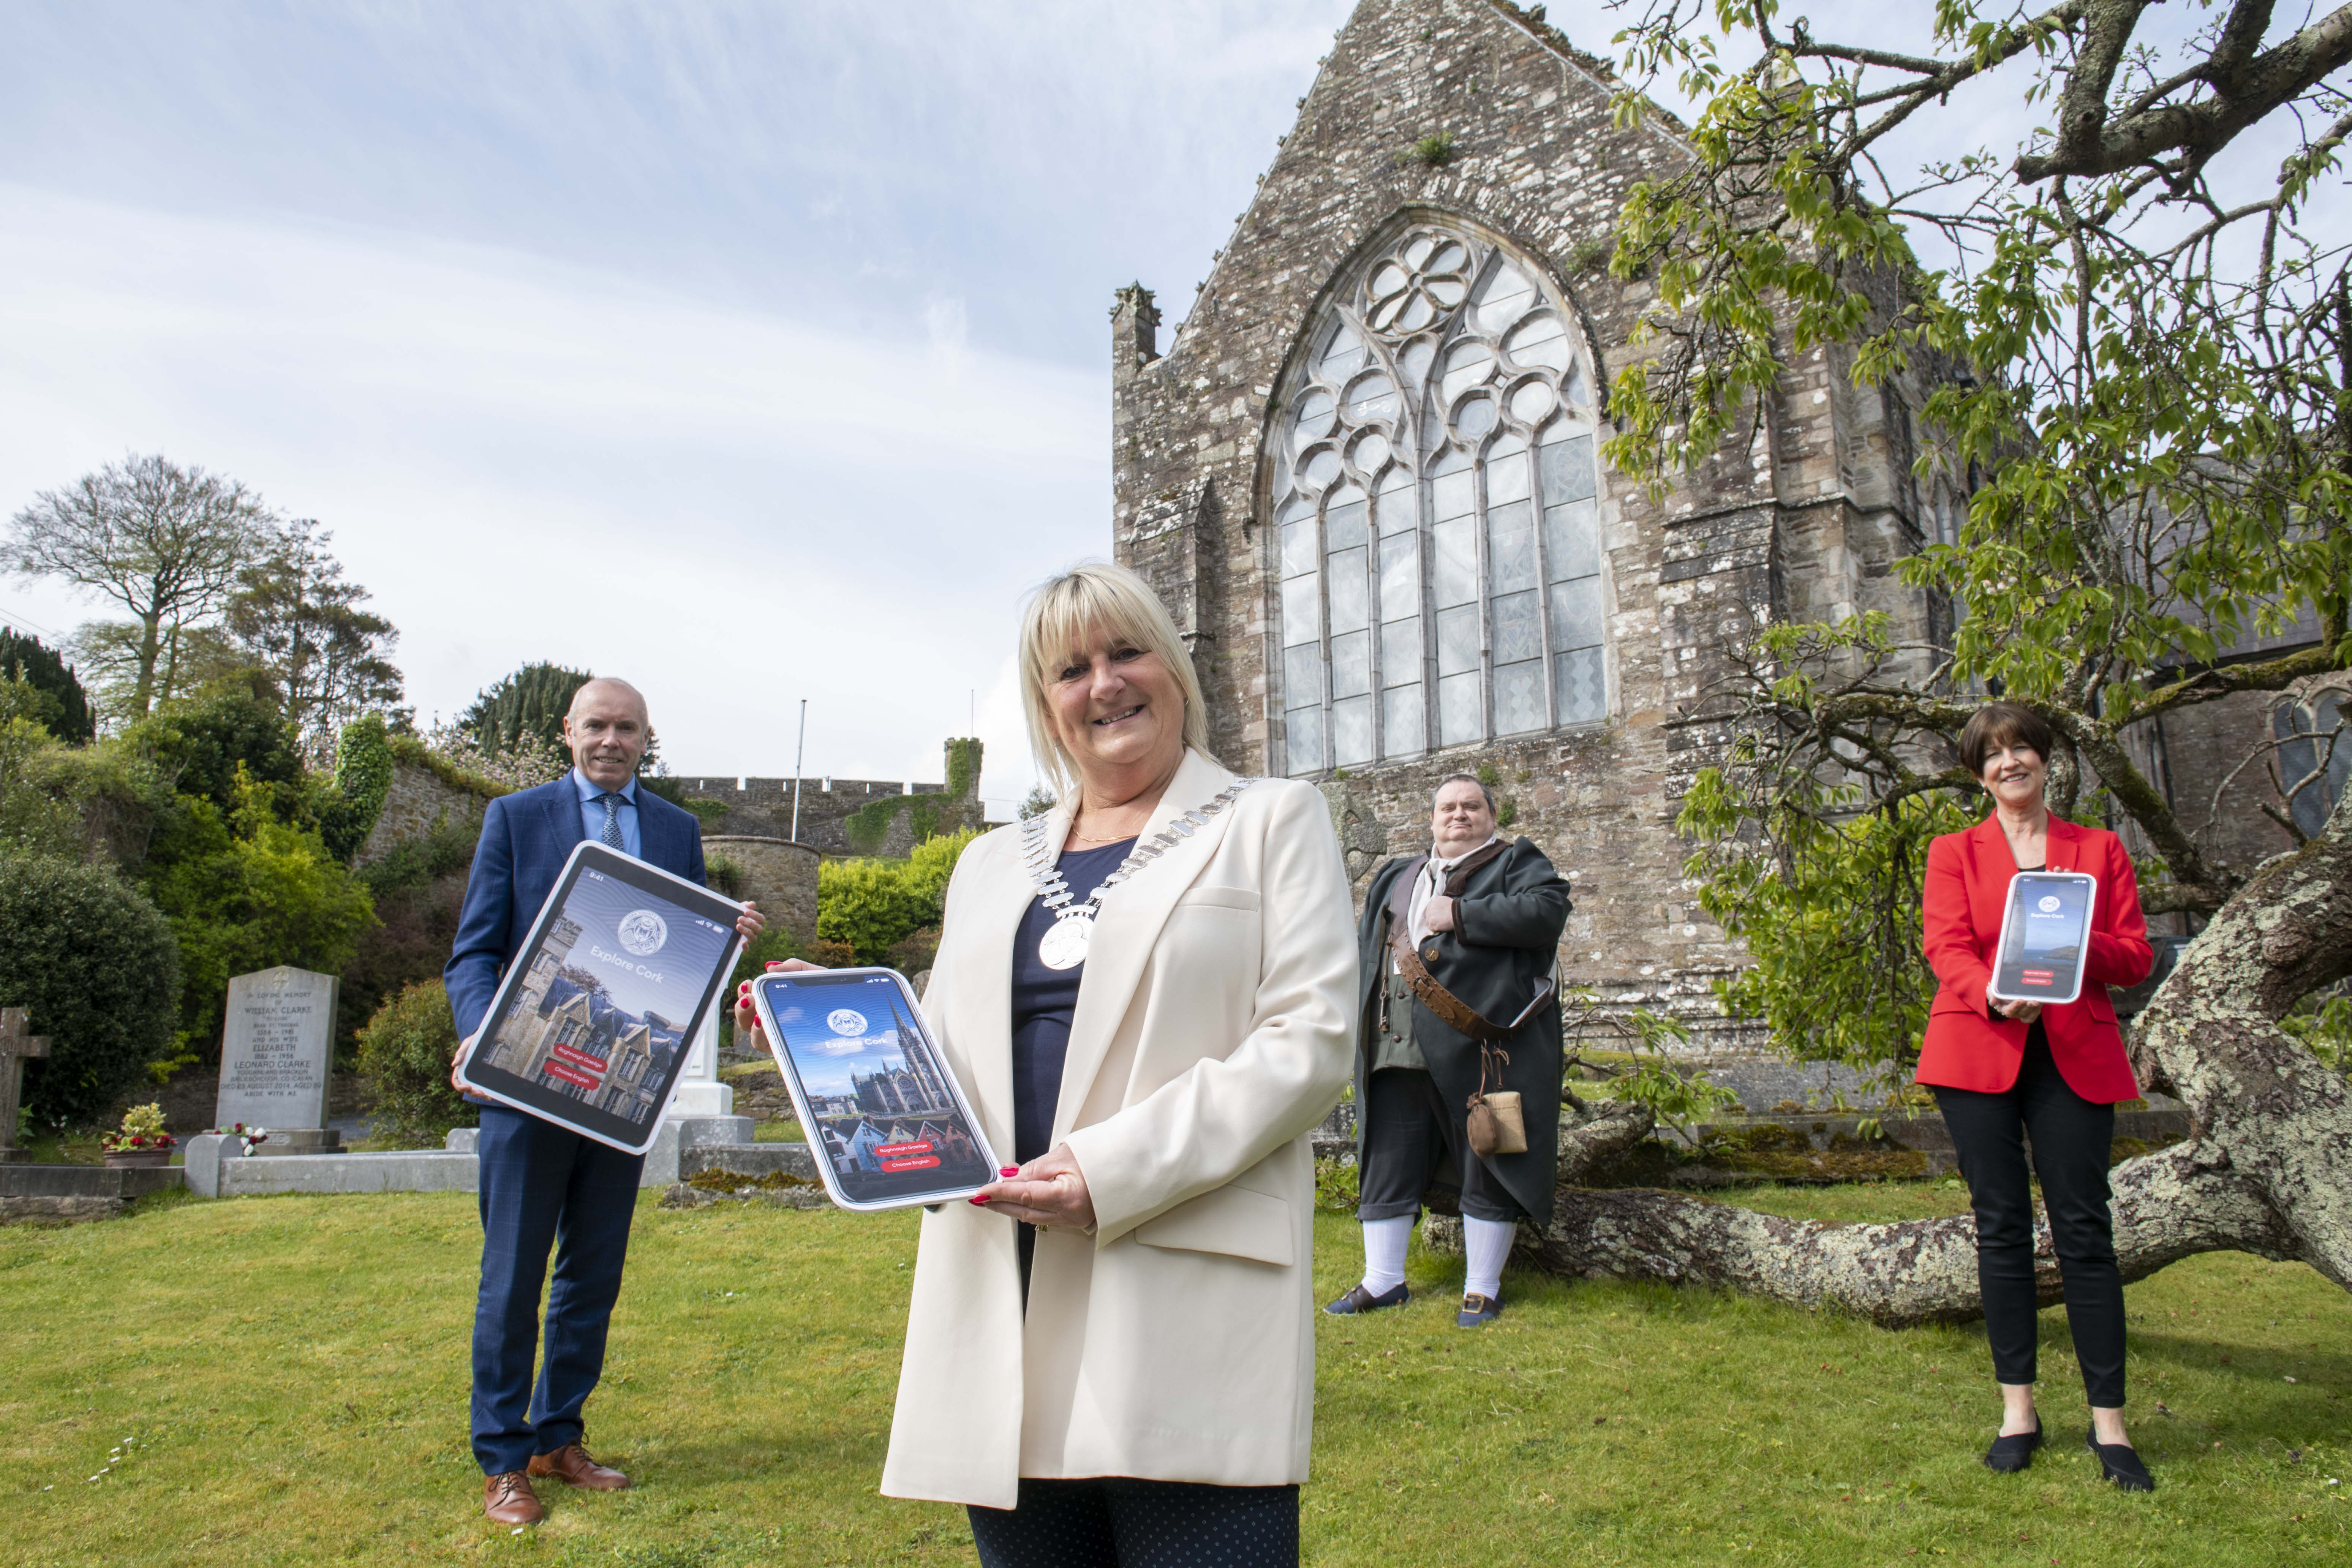 Cork County Council Launch 'Explore Cork' Tourism App featuring 850 places to see and things to do